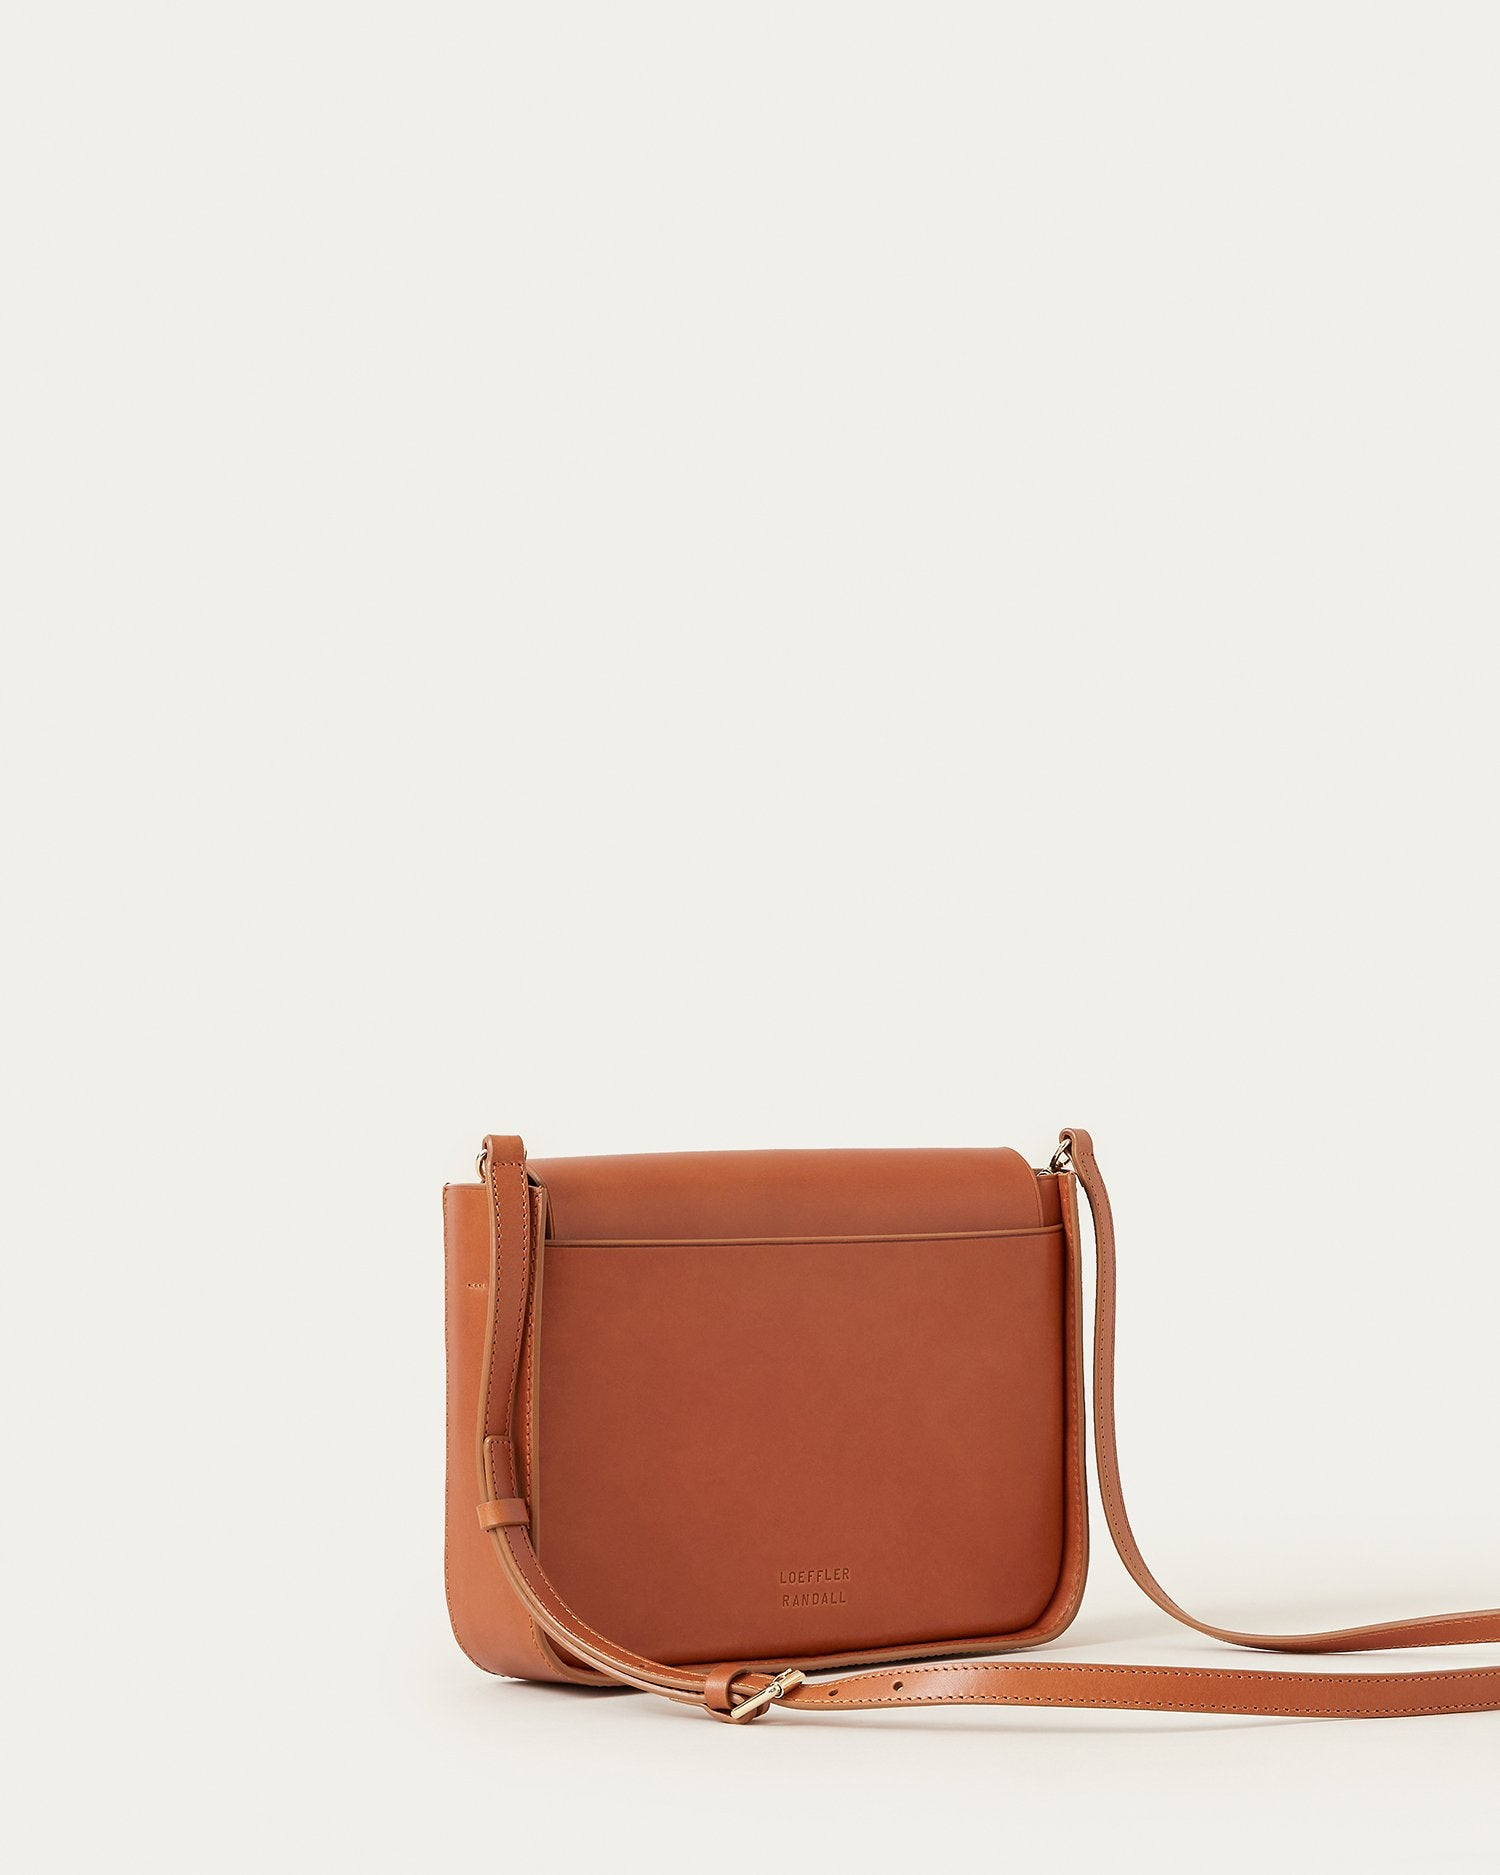 color: Cognac